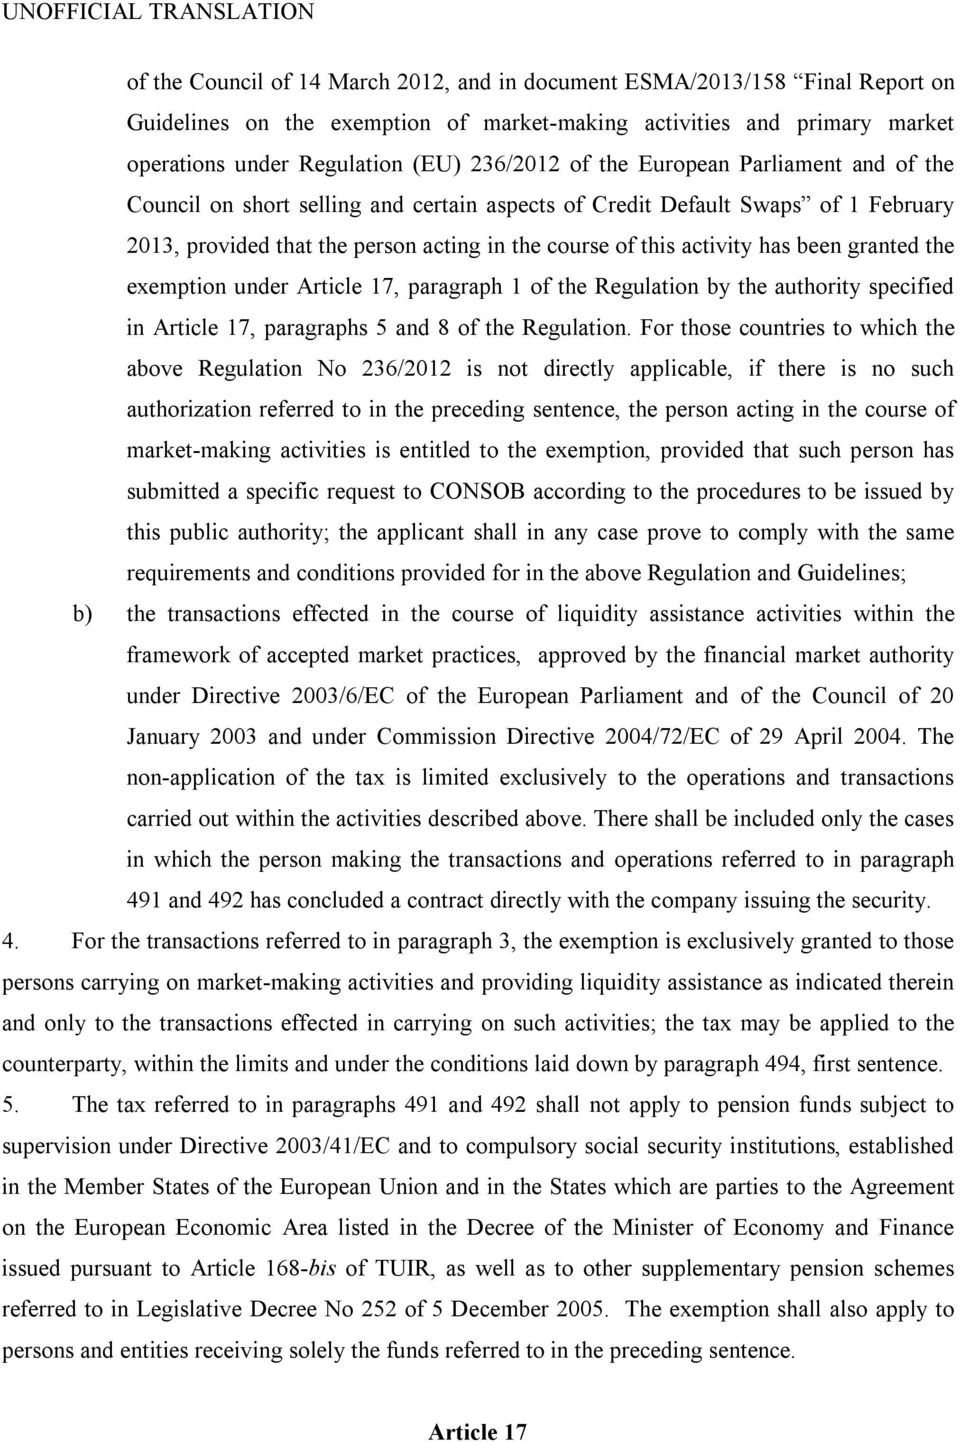 granted the exemption under Article 17, paragraph 1 of the Regulation by the authority specified in Article 17, paragraphs 5 and 8 of the Regulation.